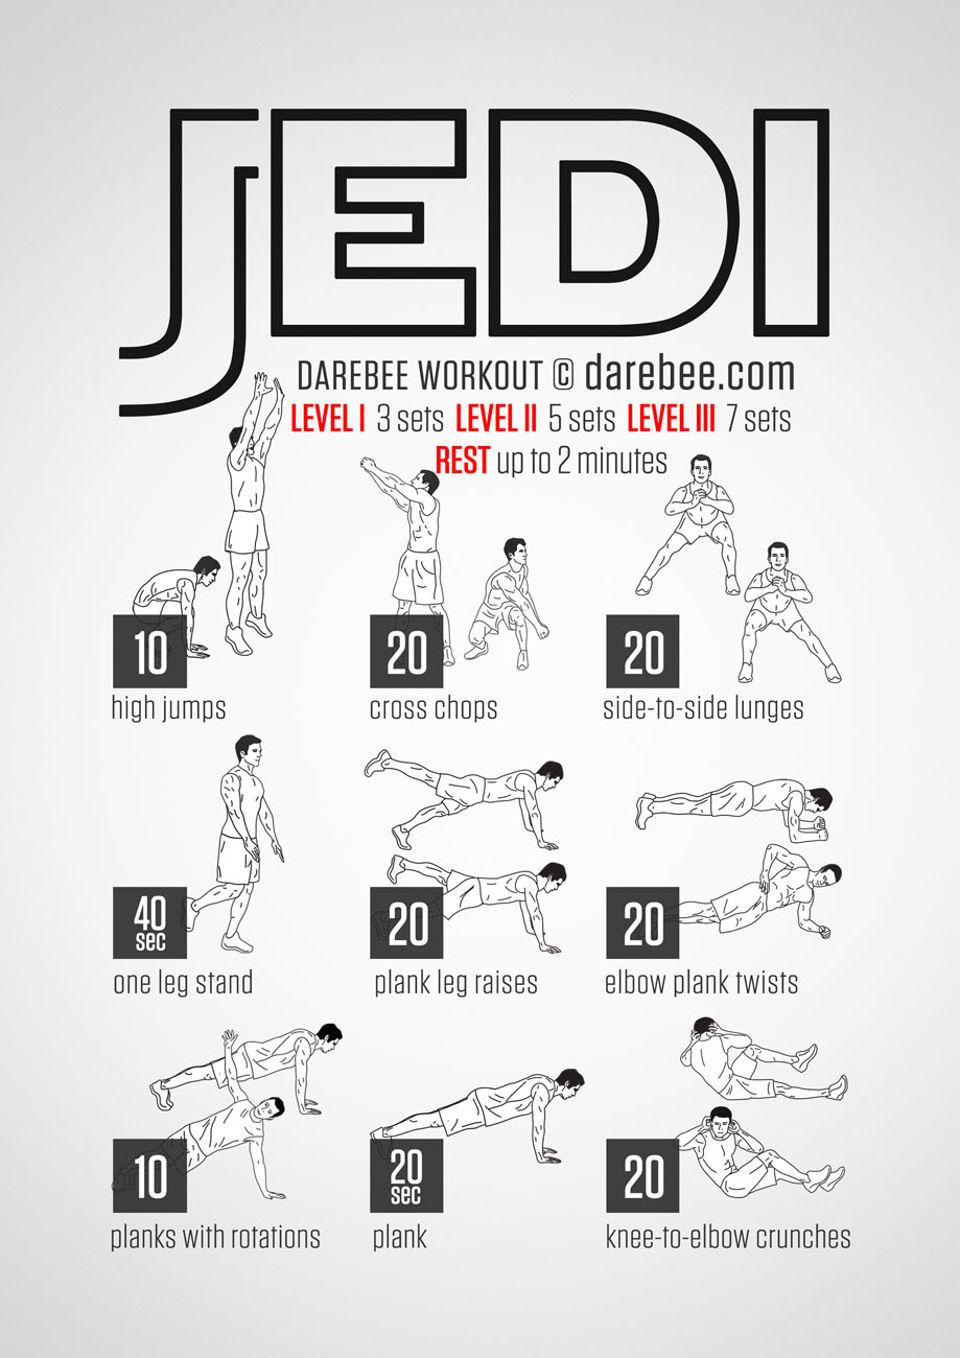 Want to have a Jedi's body? Use this workout or be